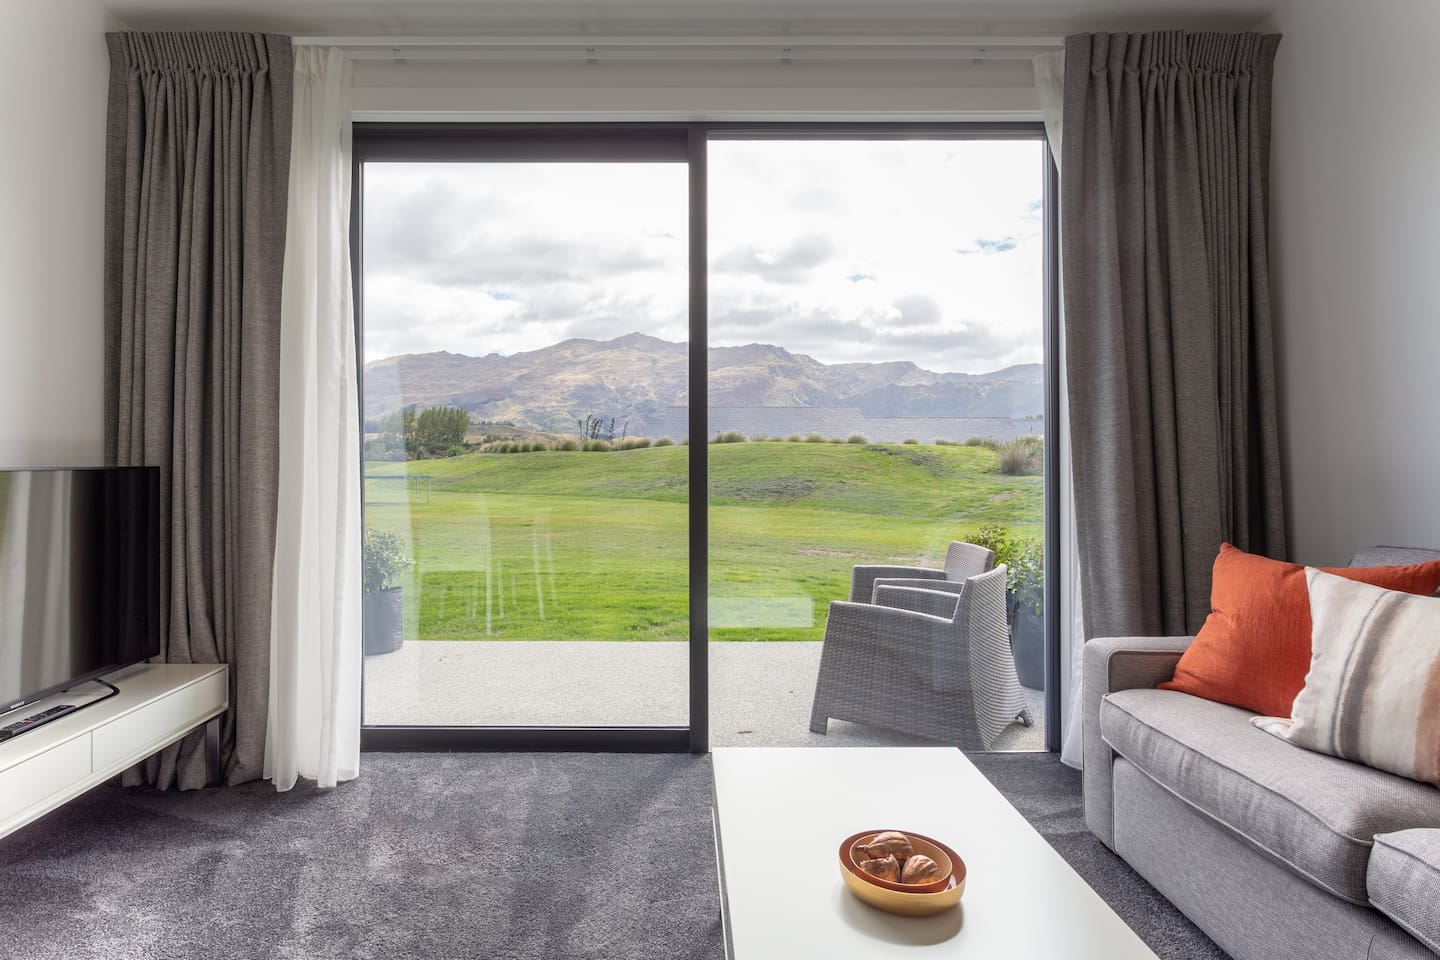 stunning views of Coronet Peak and only a 10-15 min drive to the ski field carpark.